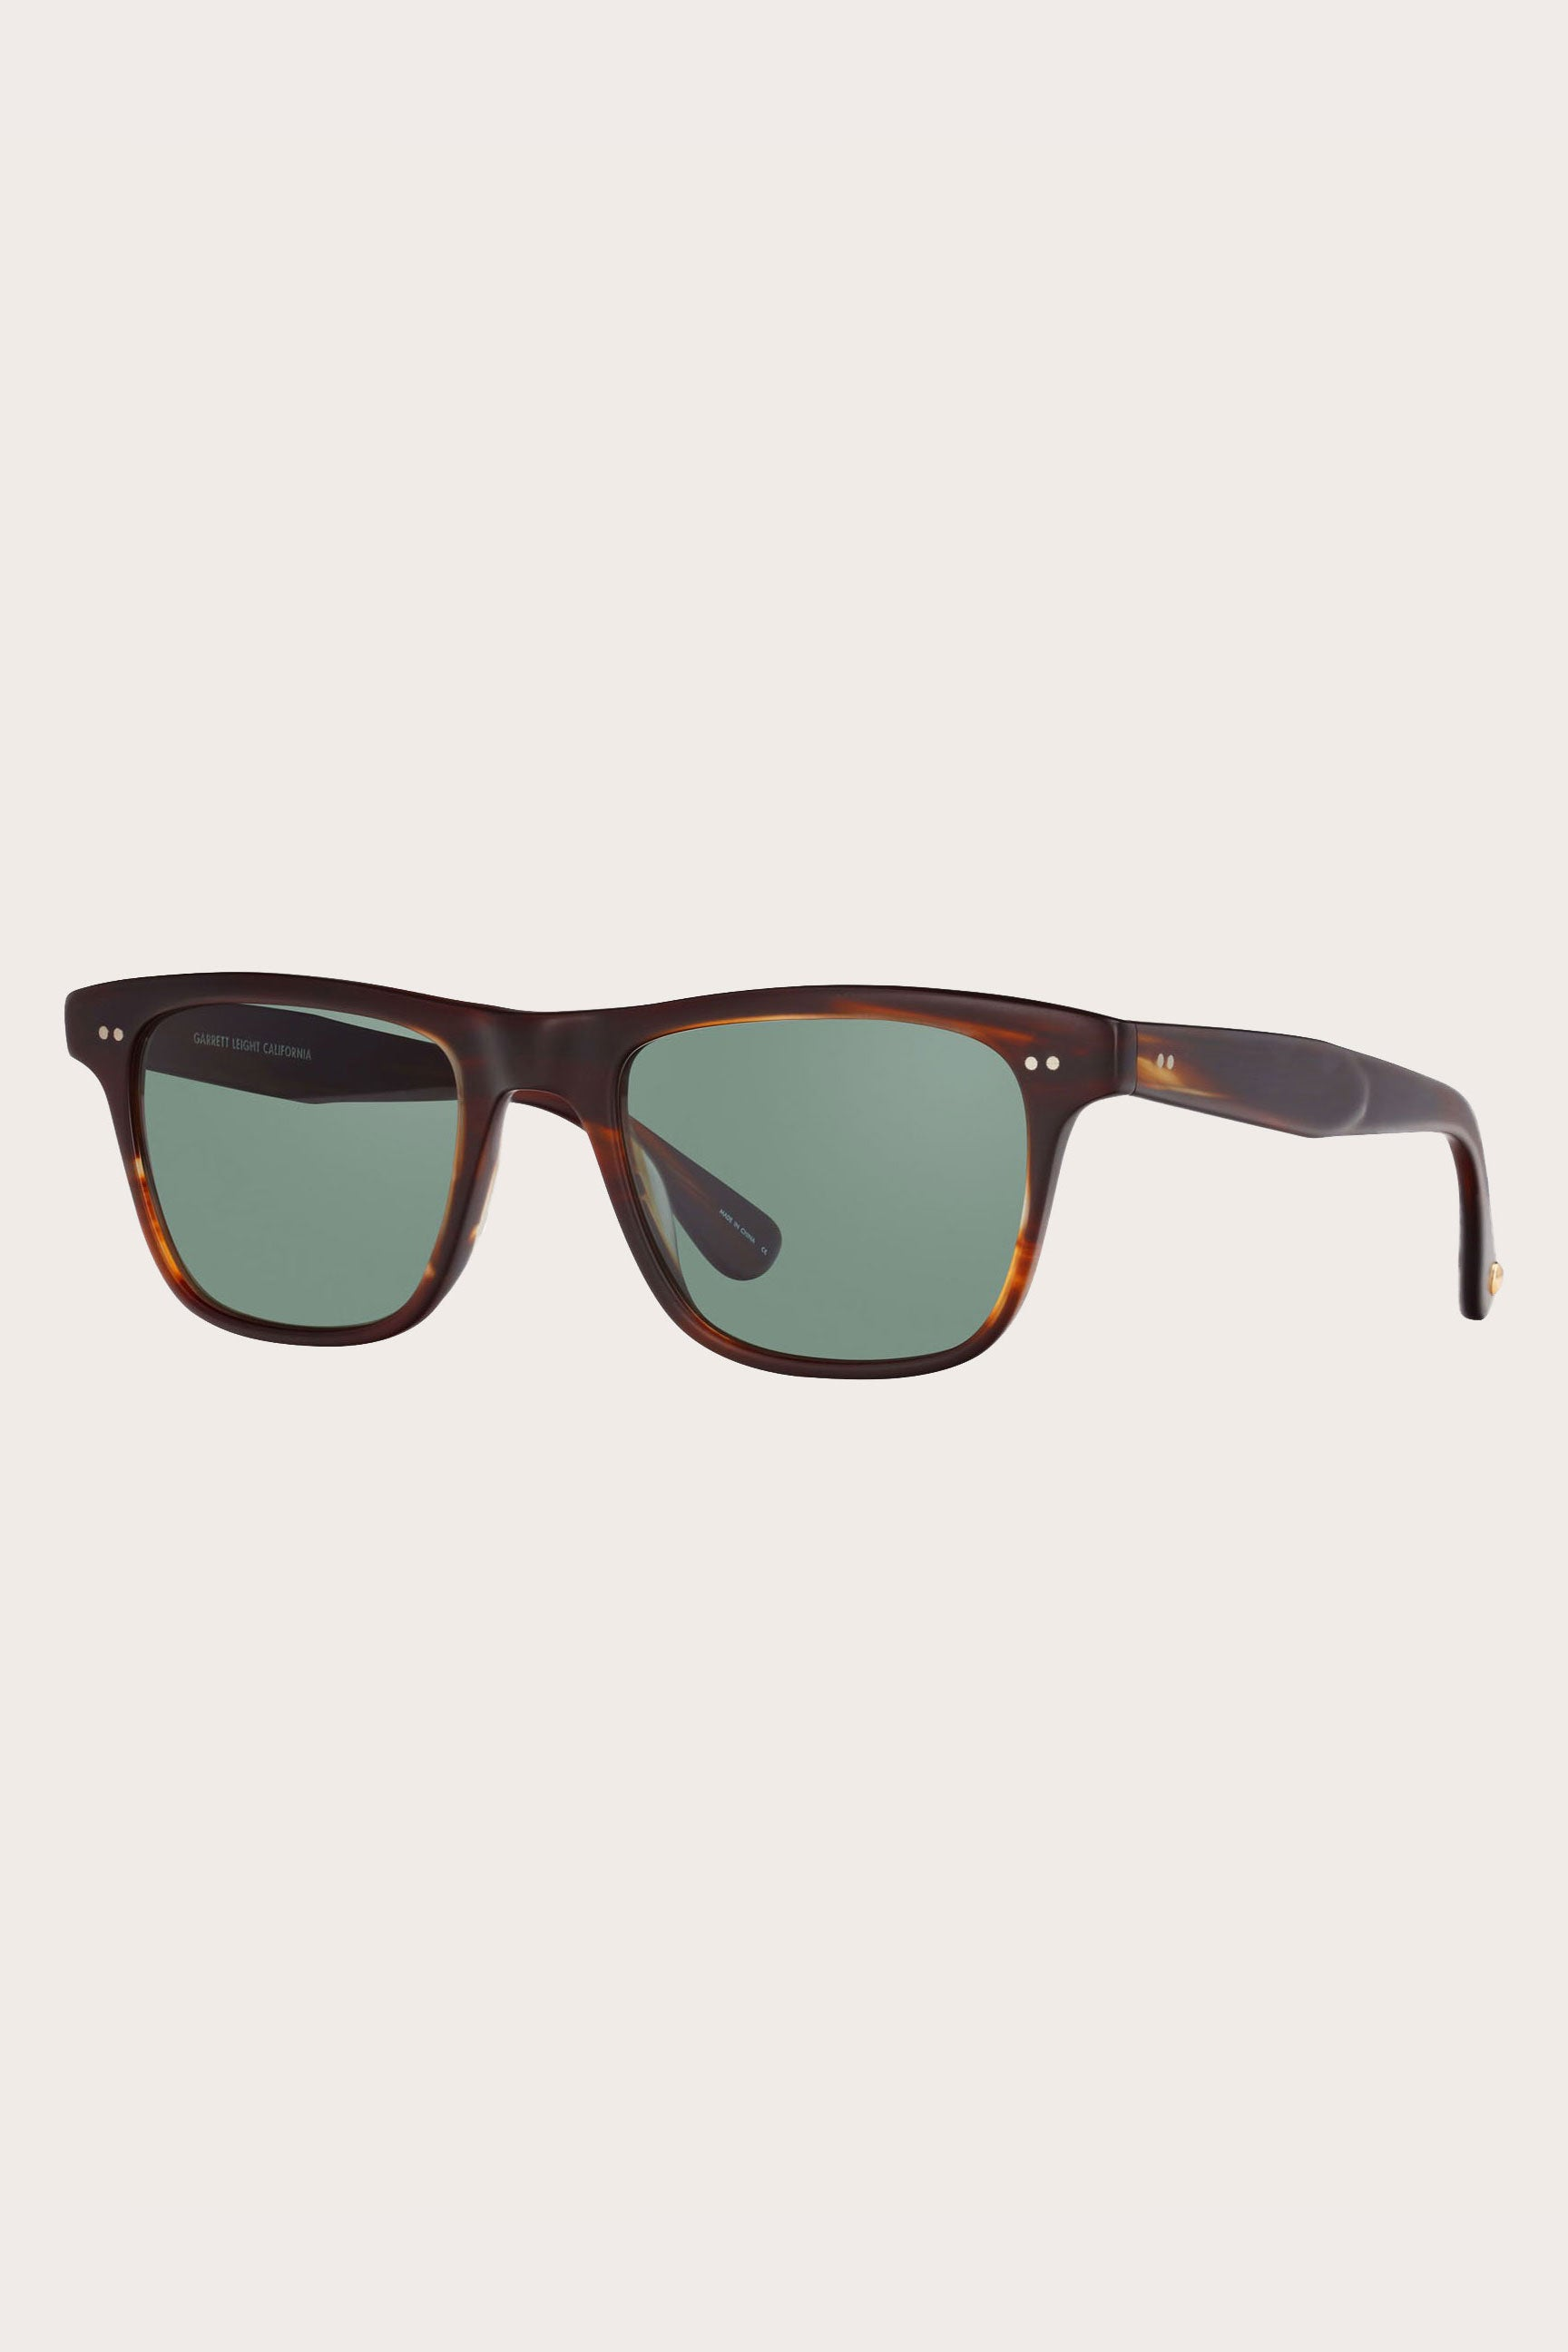 d15ce53c6a Garrett Leight - Wavecrest Sunglasses